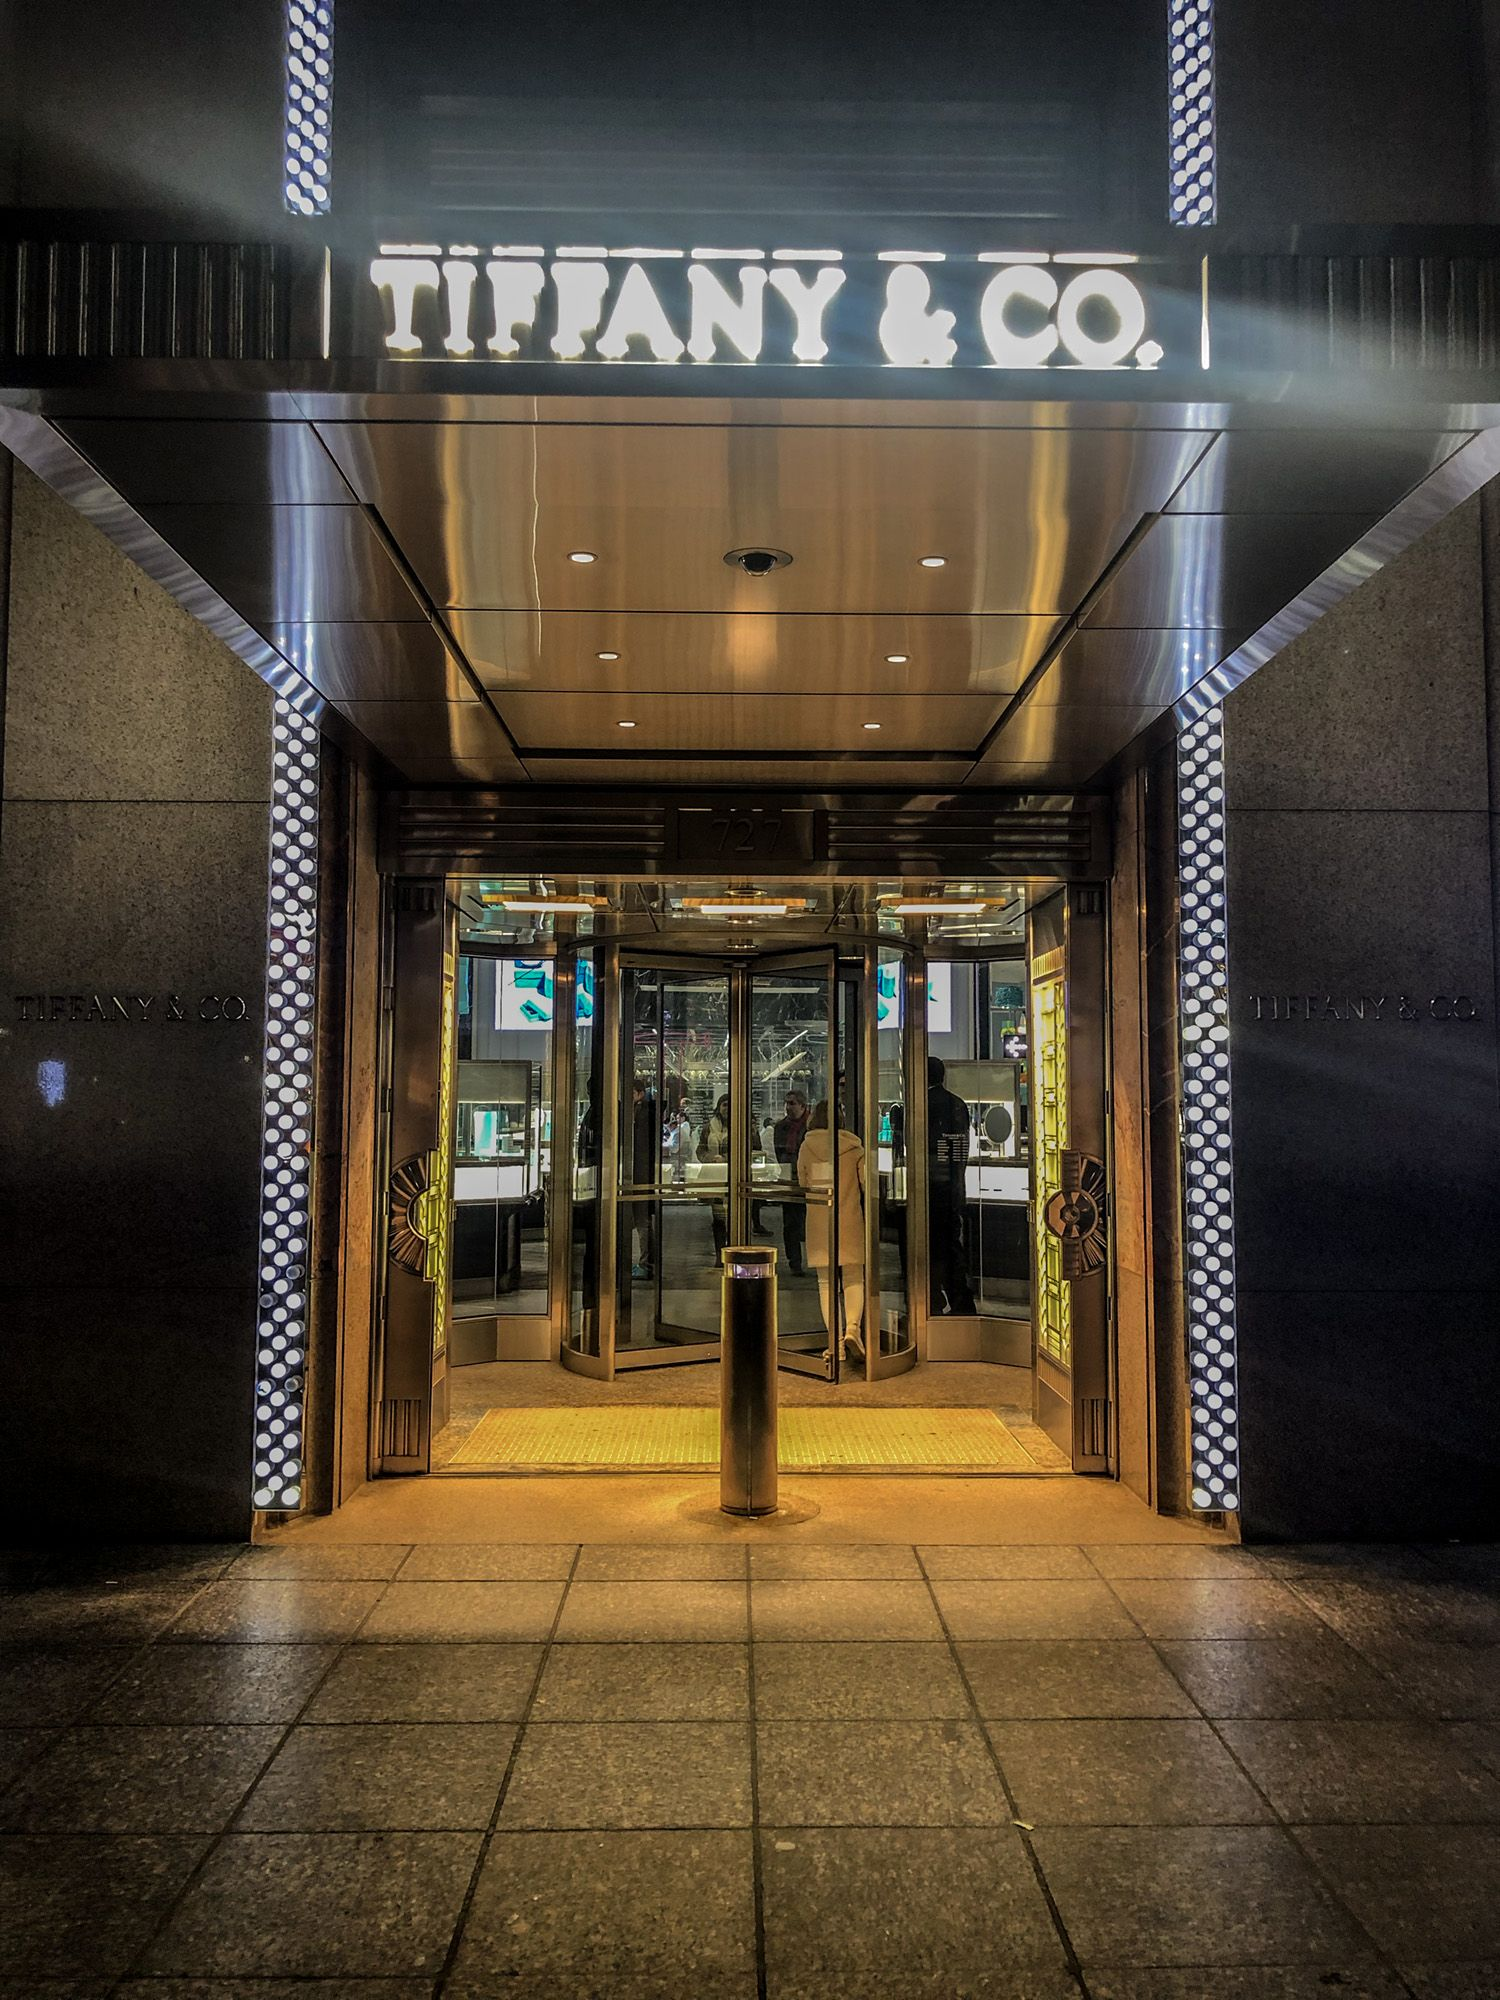 Tiffany & Co, Ruta andando por Manhattan